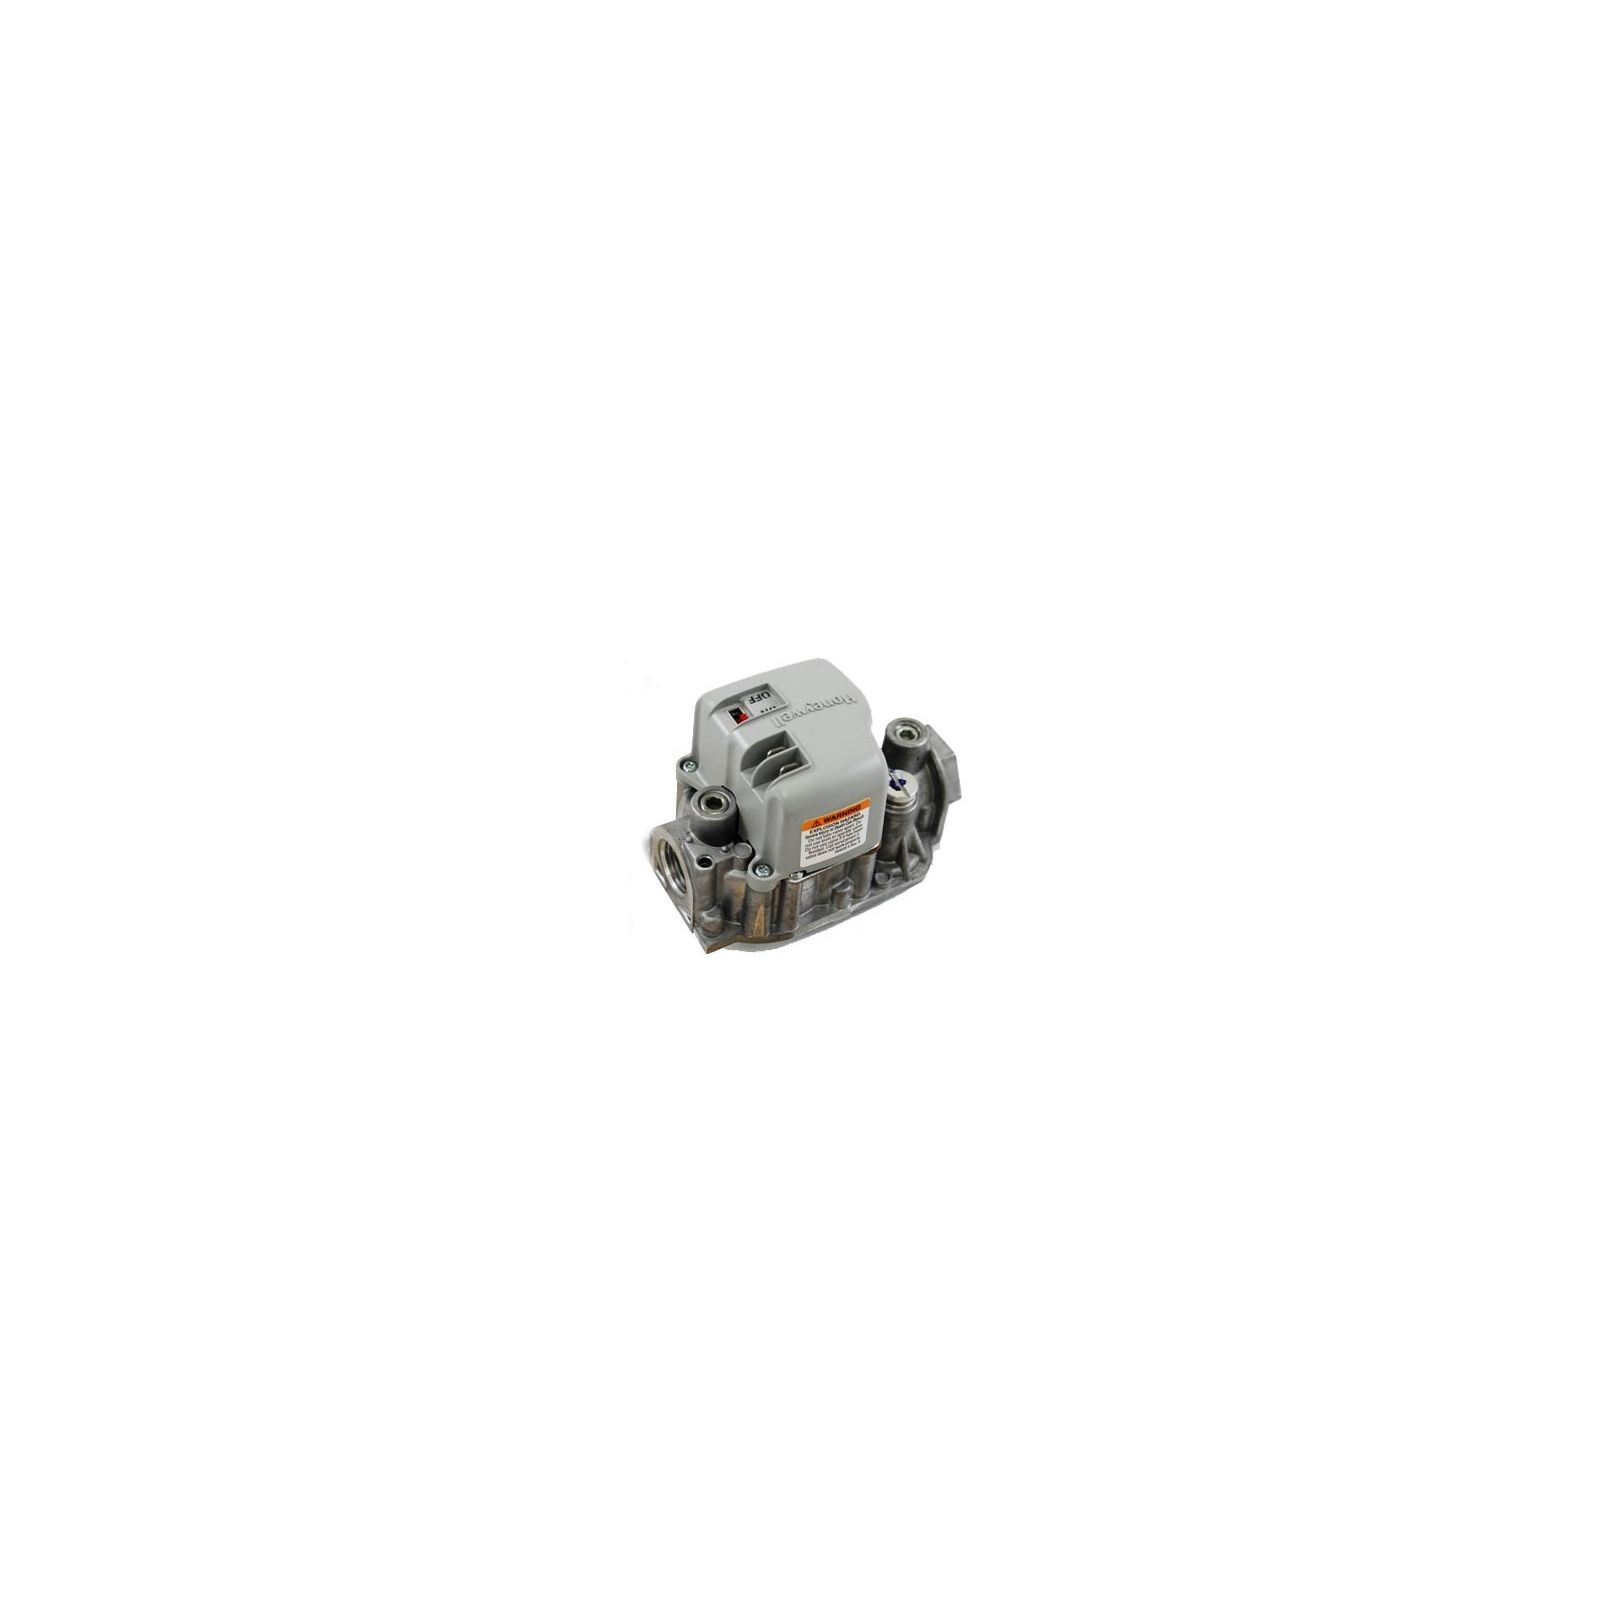 Honeywell 624775 - Nortek Replacement Gas Valve HW, VR8215S, 24V, 50/60Hz